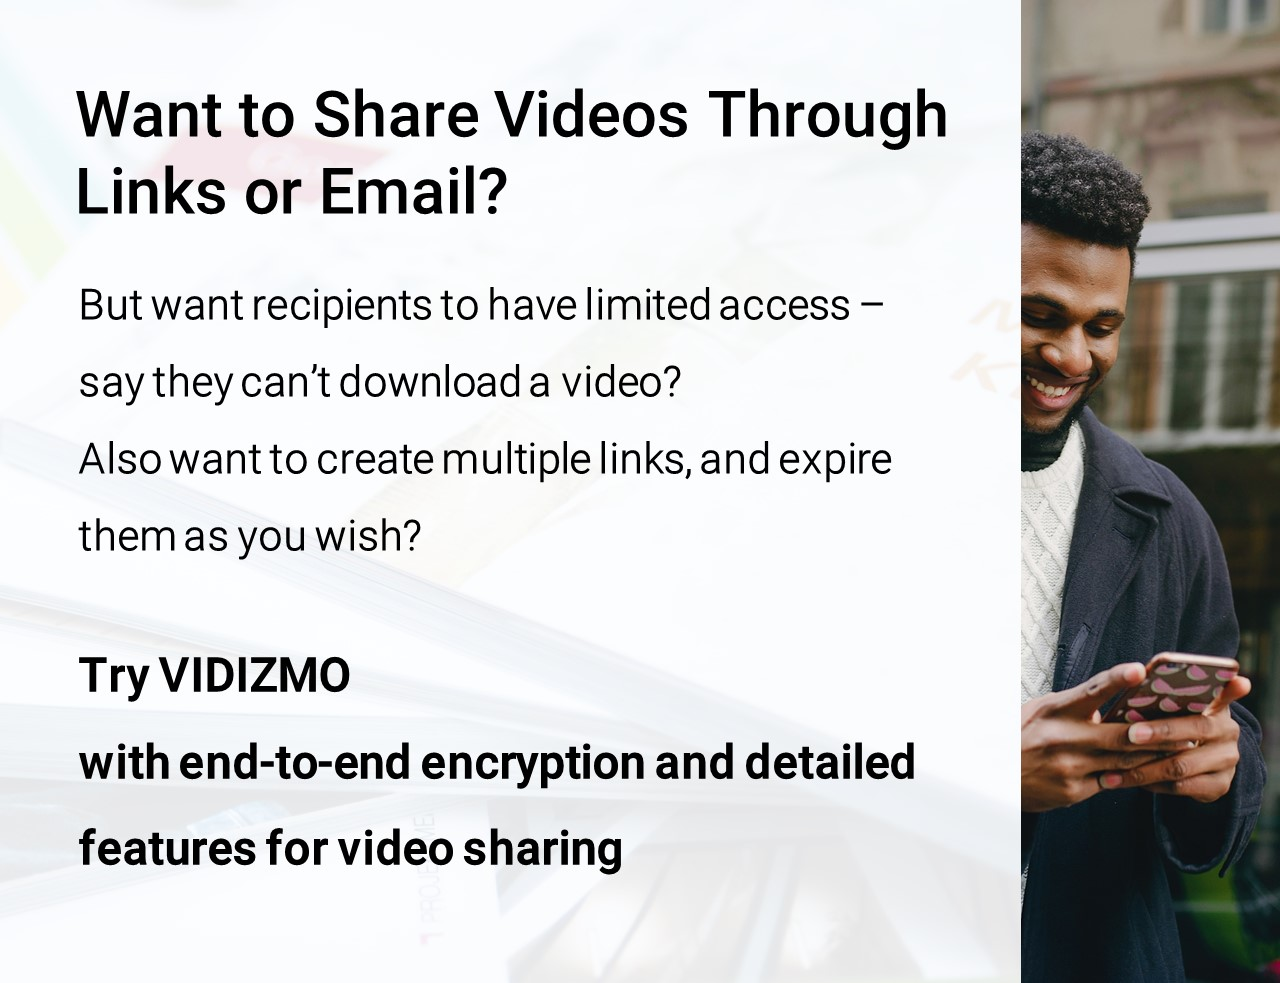 Share Temporary Video - Infographic